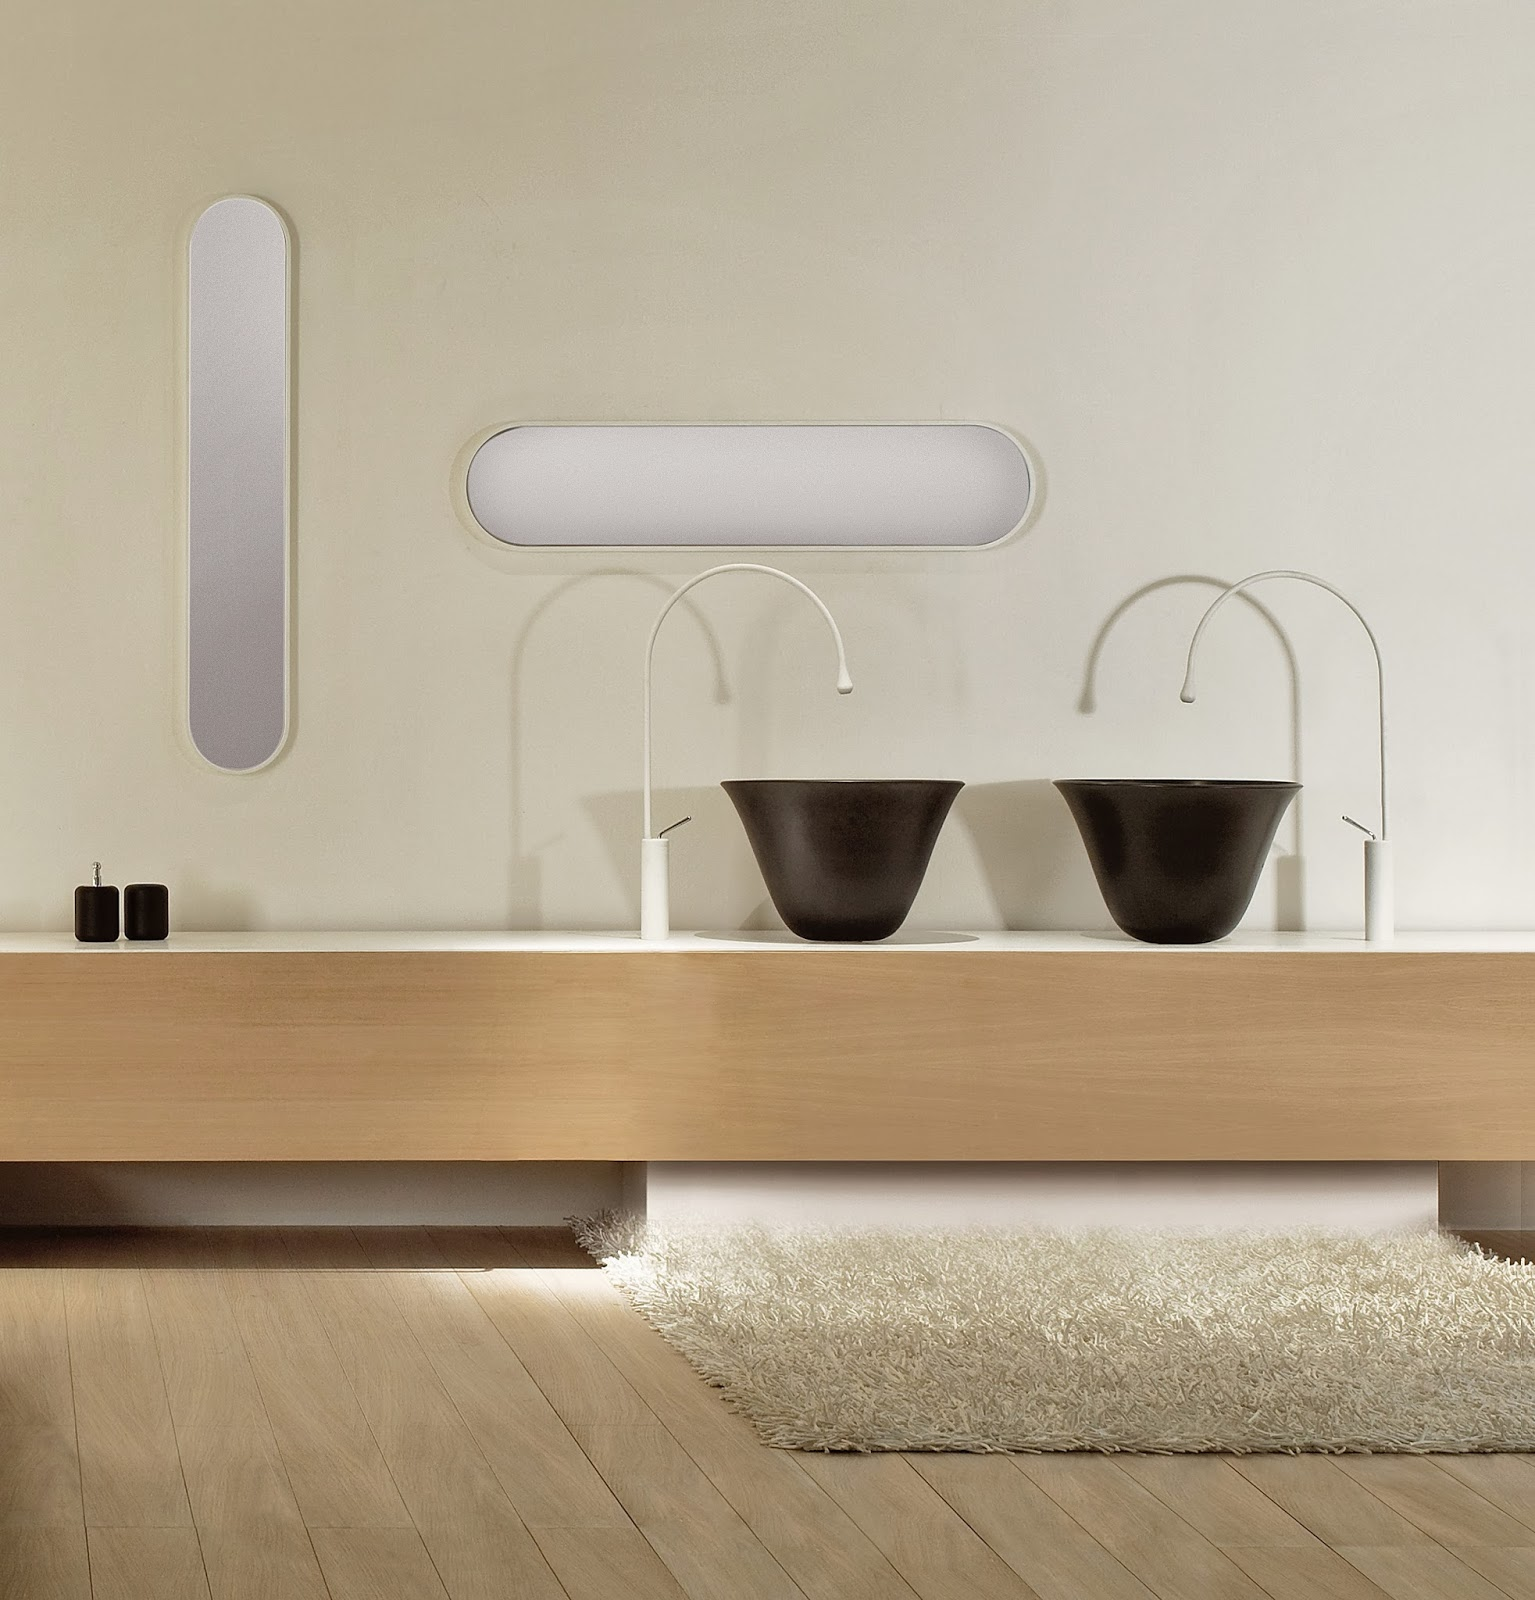 Lisa Mende Design: Gessi Luxury Bath and Kitchen Products